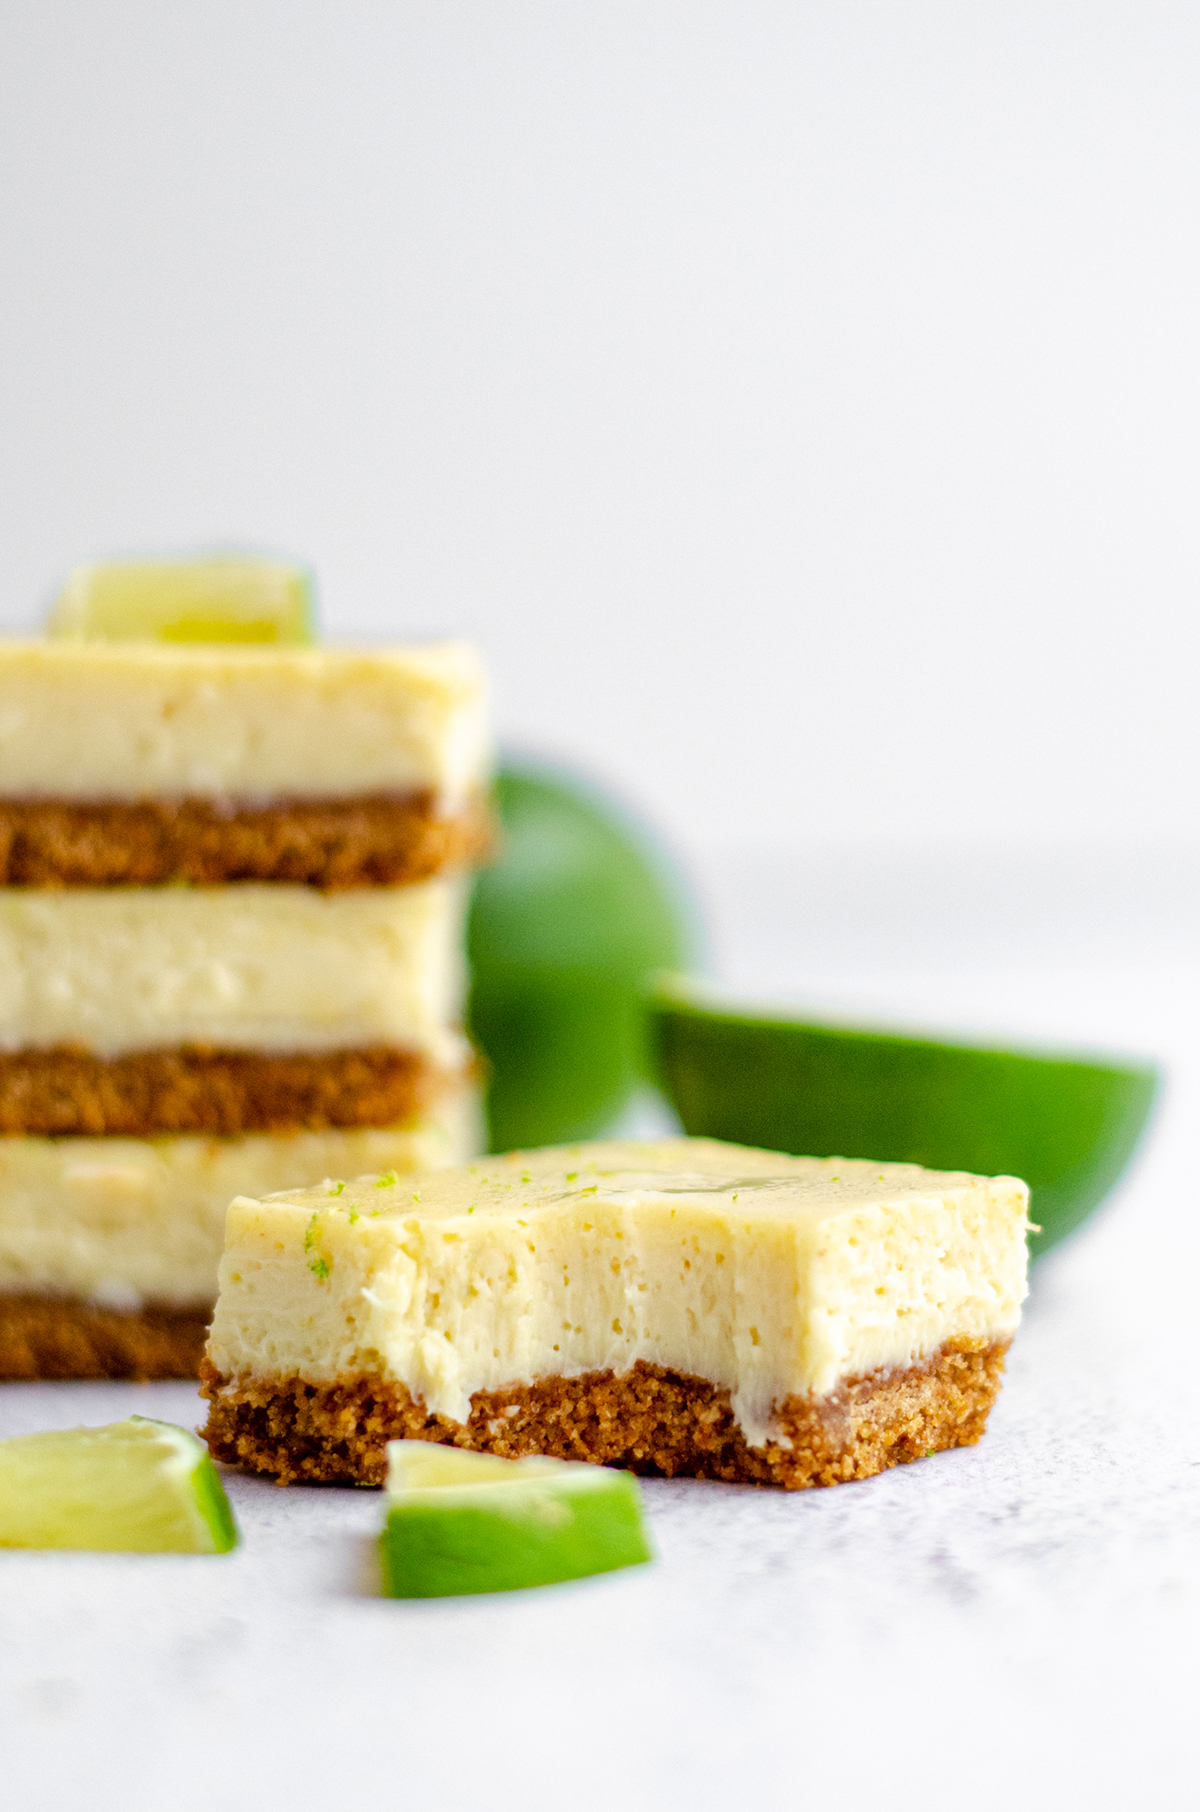 a key lime pie bar in the foreground with a bite taken out of it and a stack of key lime pie bars in the background